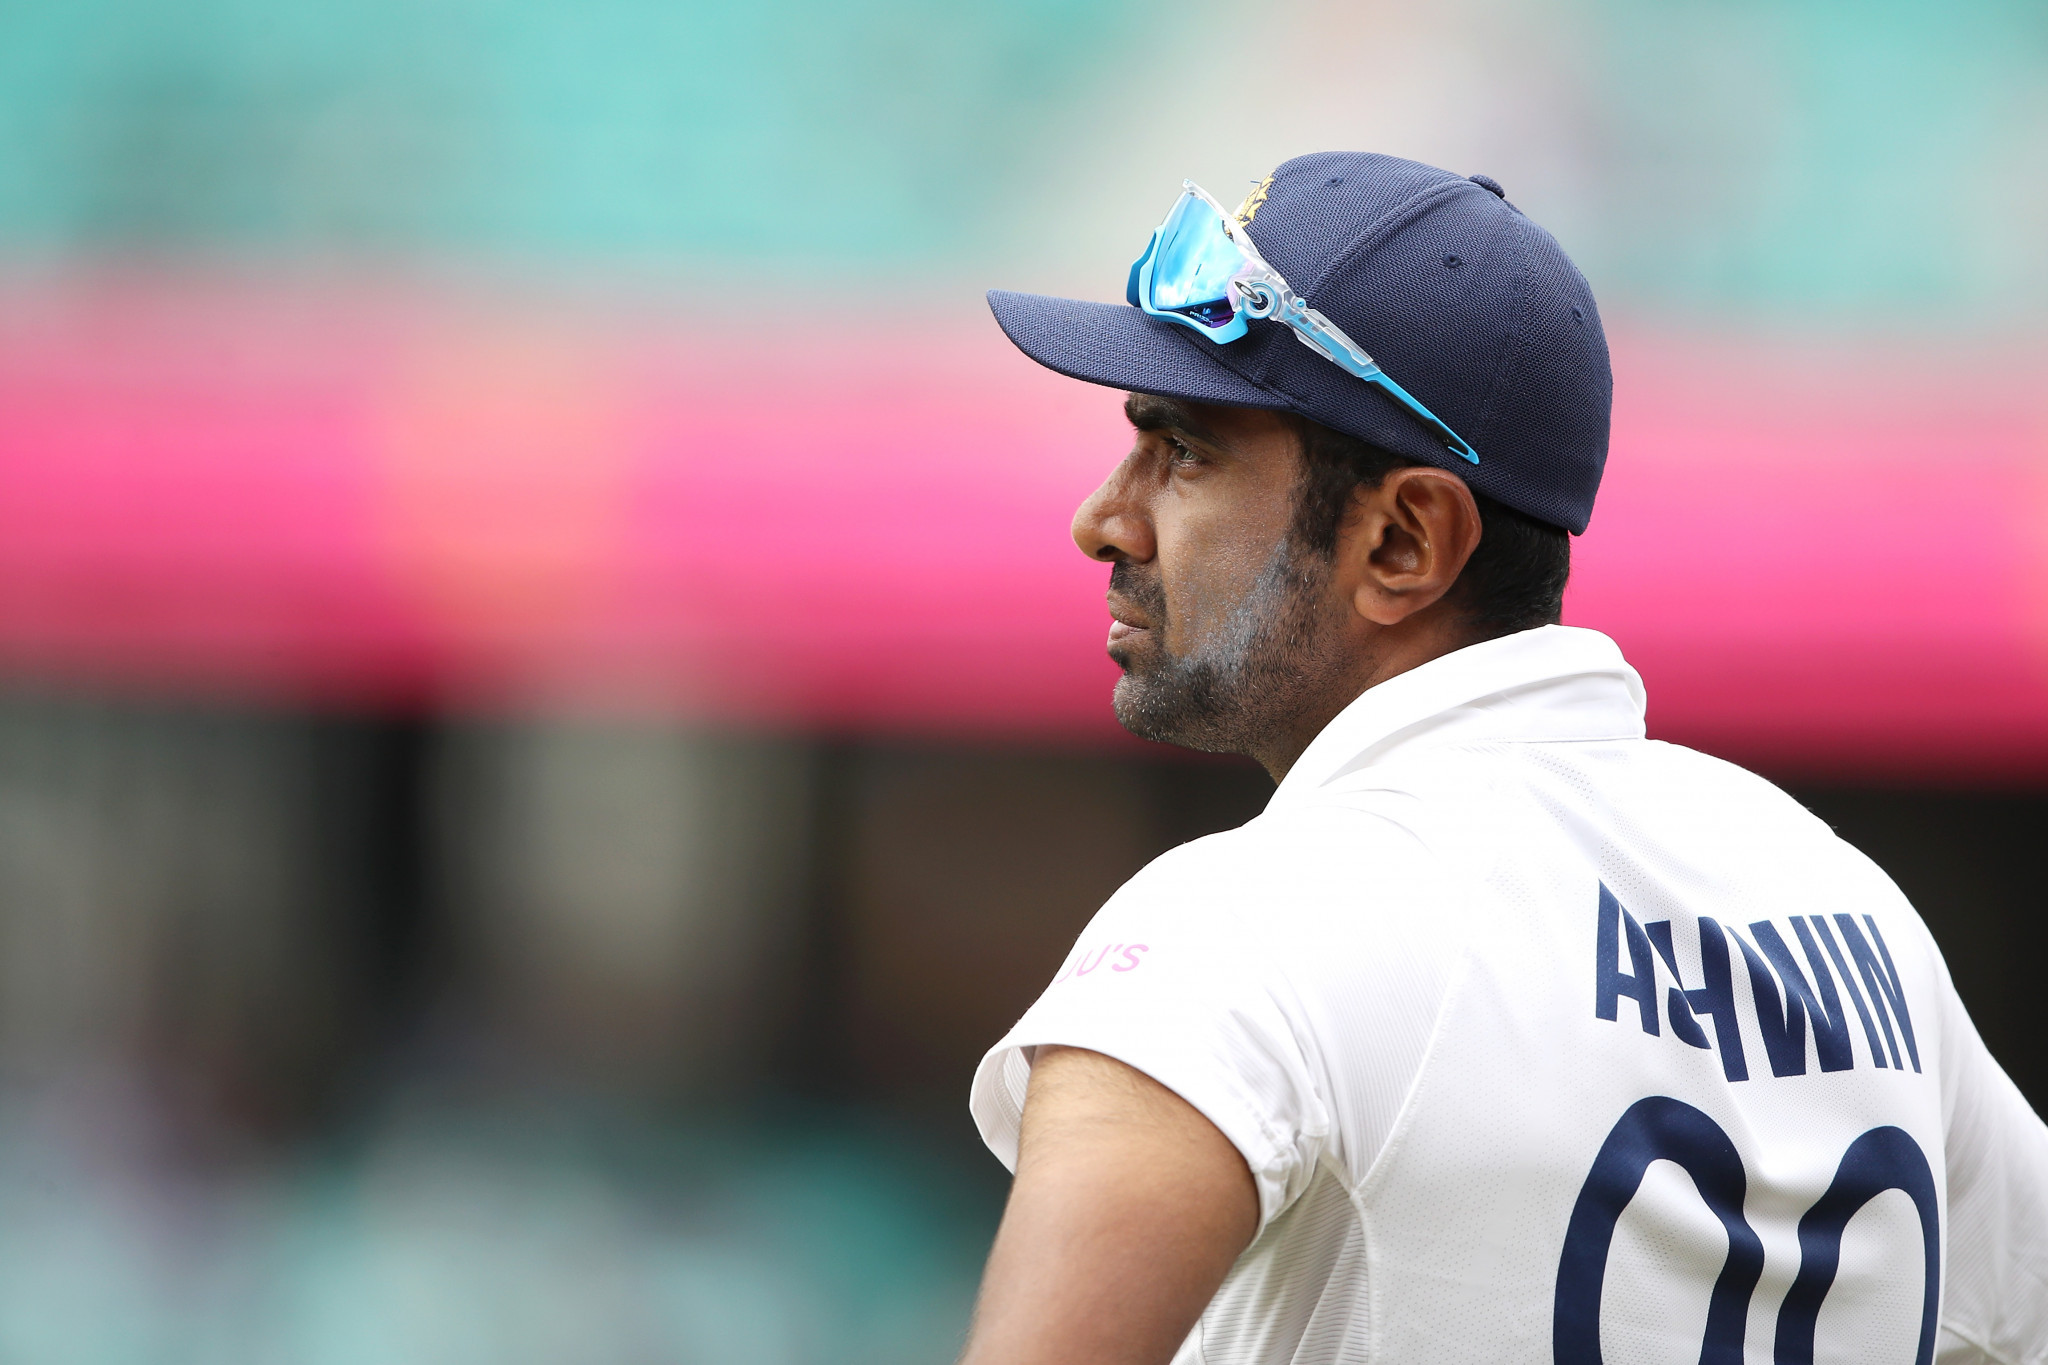 Ravichandran Ashwin is the fourth Indian bowler to reach 400 Test wickets  ©Getty Images